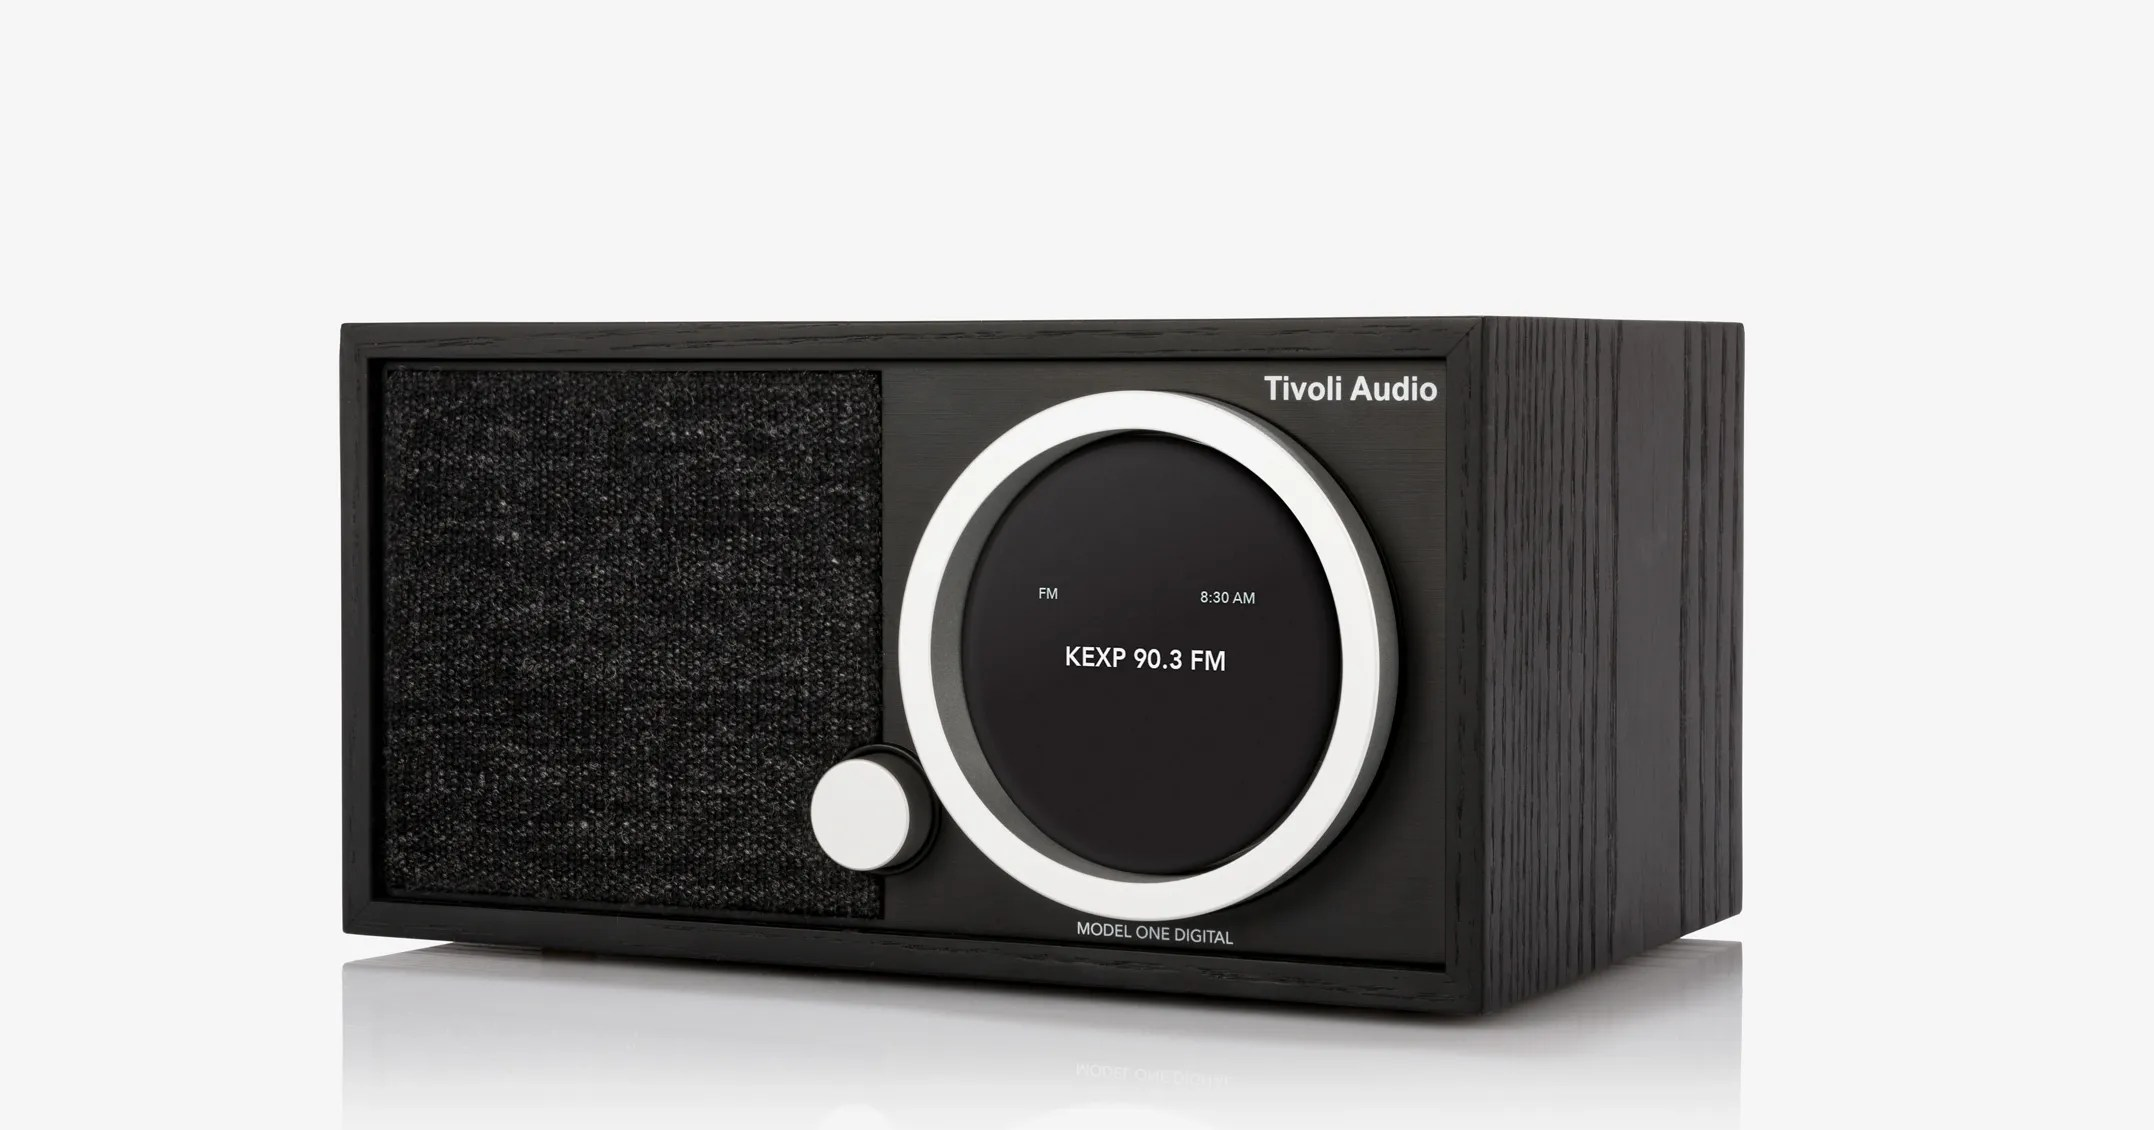 Tivoli Radio Sale Tivoli Model One Digital Review The Classic Table Top Radio Gets Updated For The Streaming Age